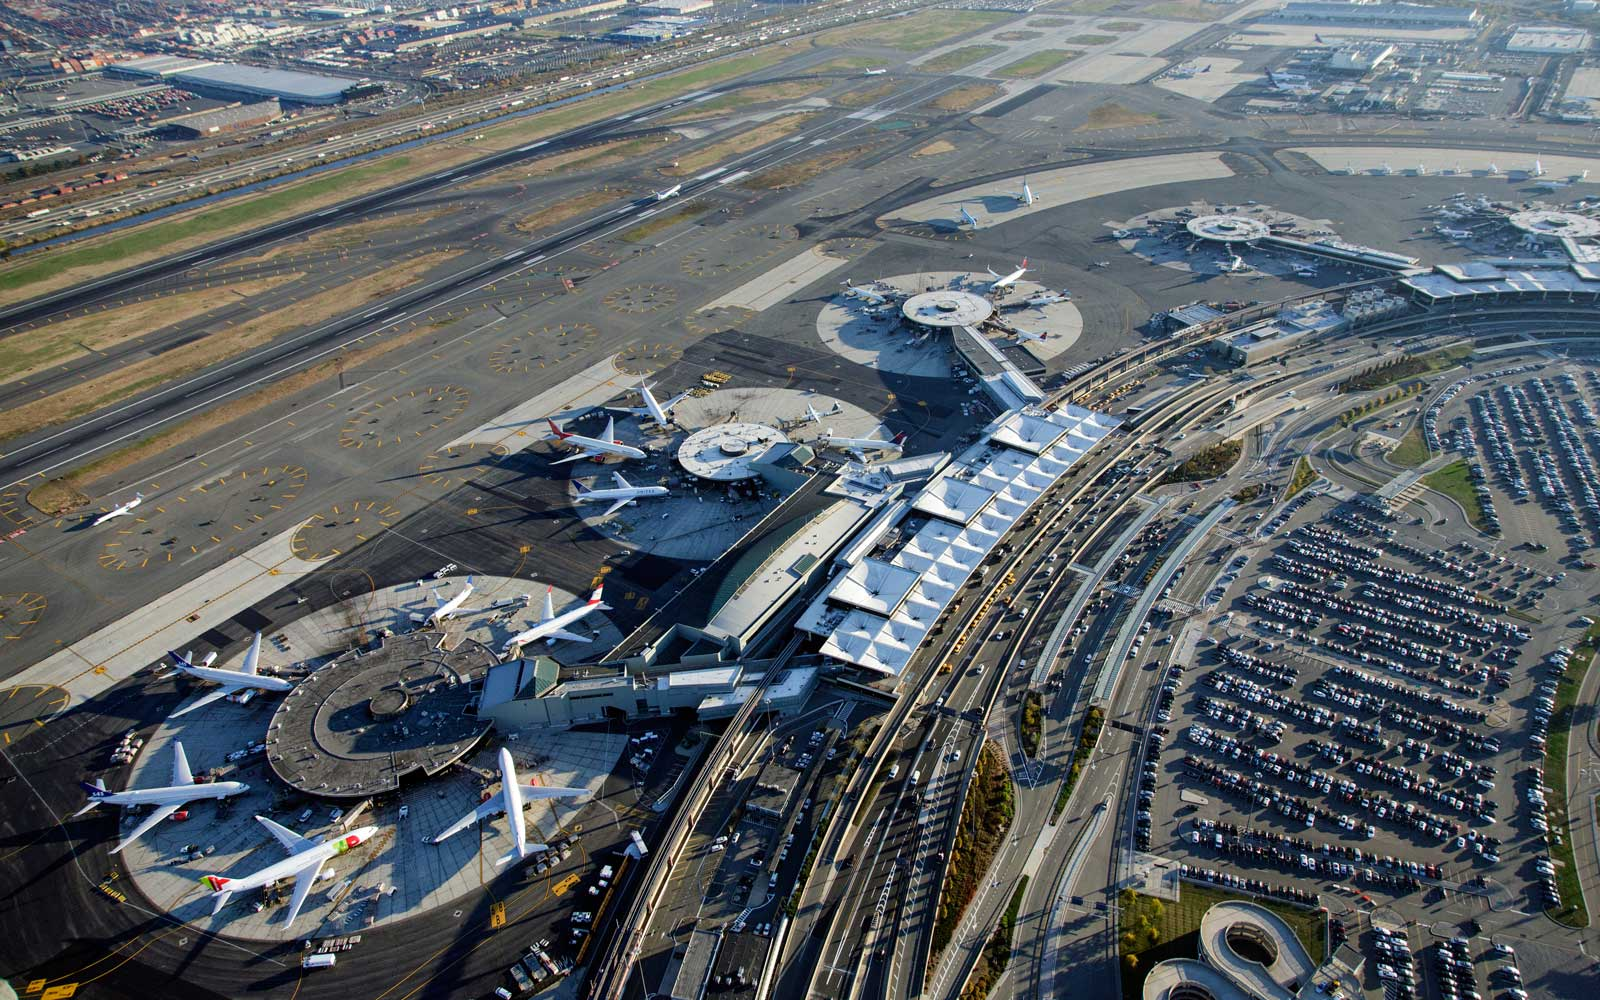 Overview of planes at Newark Liberty Airport